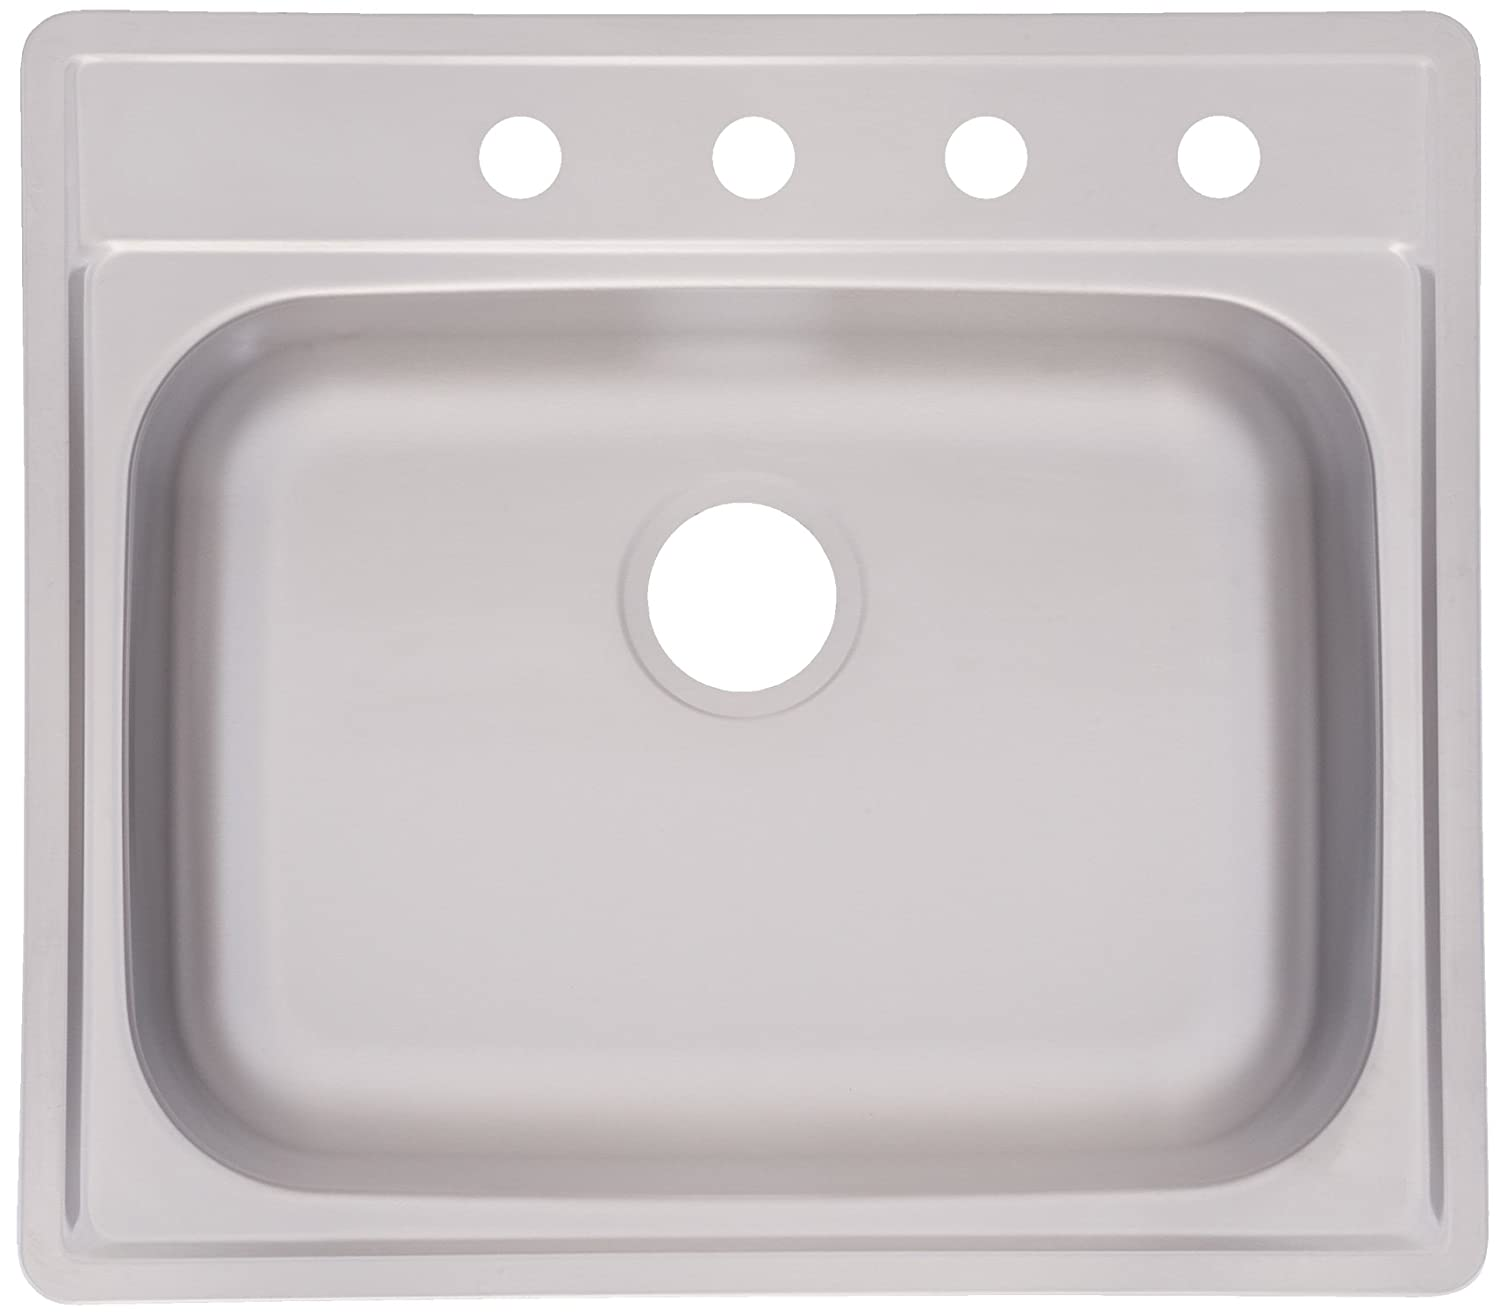 Kindred fss804nb single bowl stainless steel 25 x 22 in topmount kindred fss804nb single bowl stainless steel 25 x 22 in topmount sink stainless steel laundry sink amazon workwithnaturefo